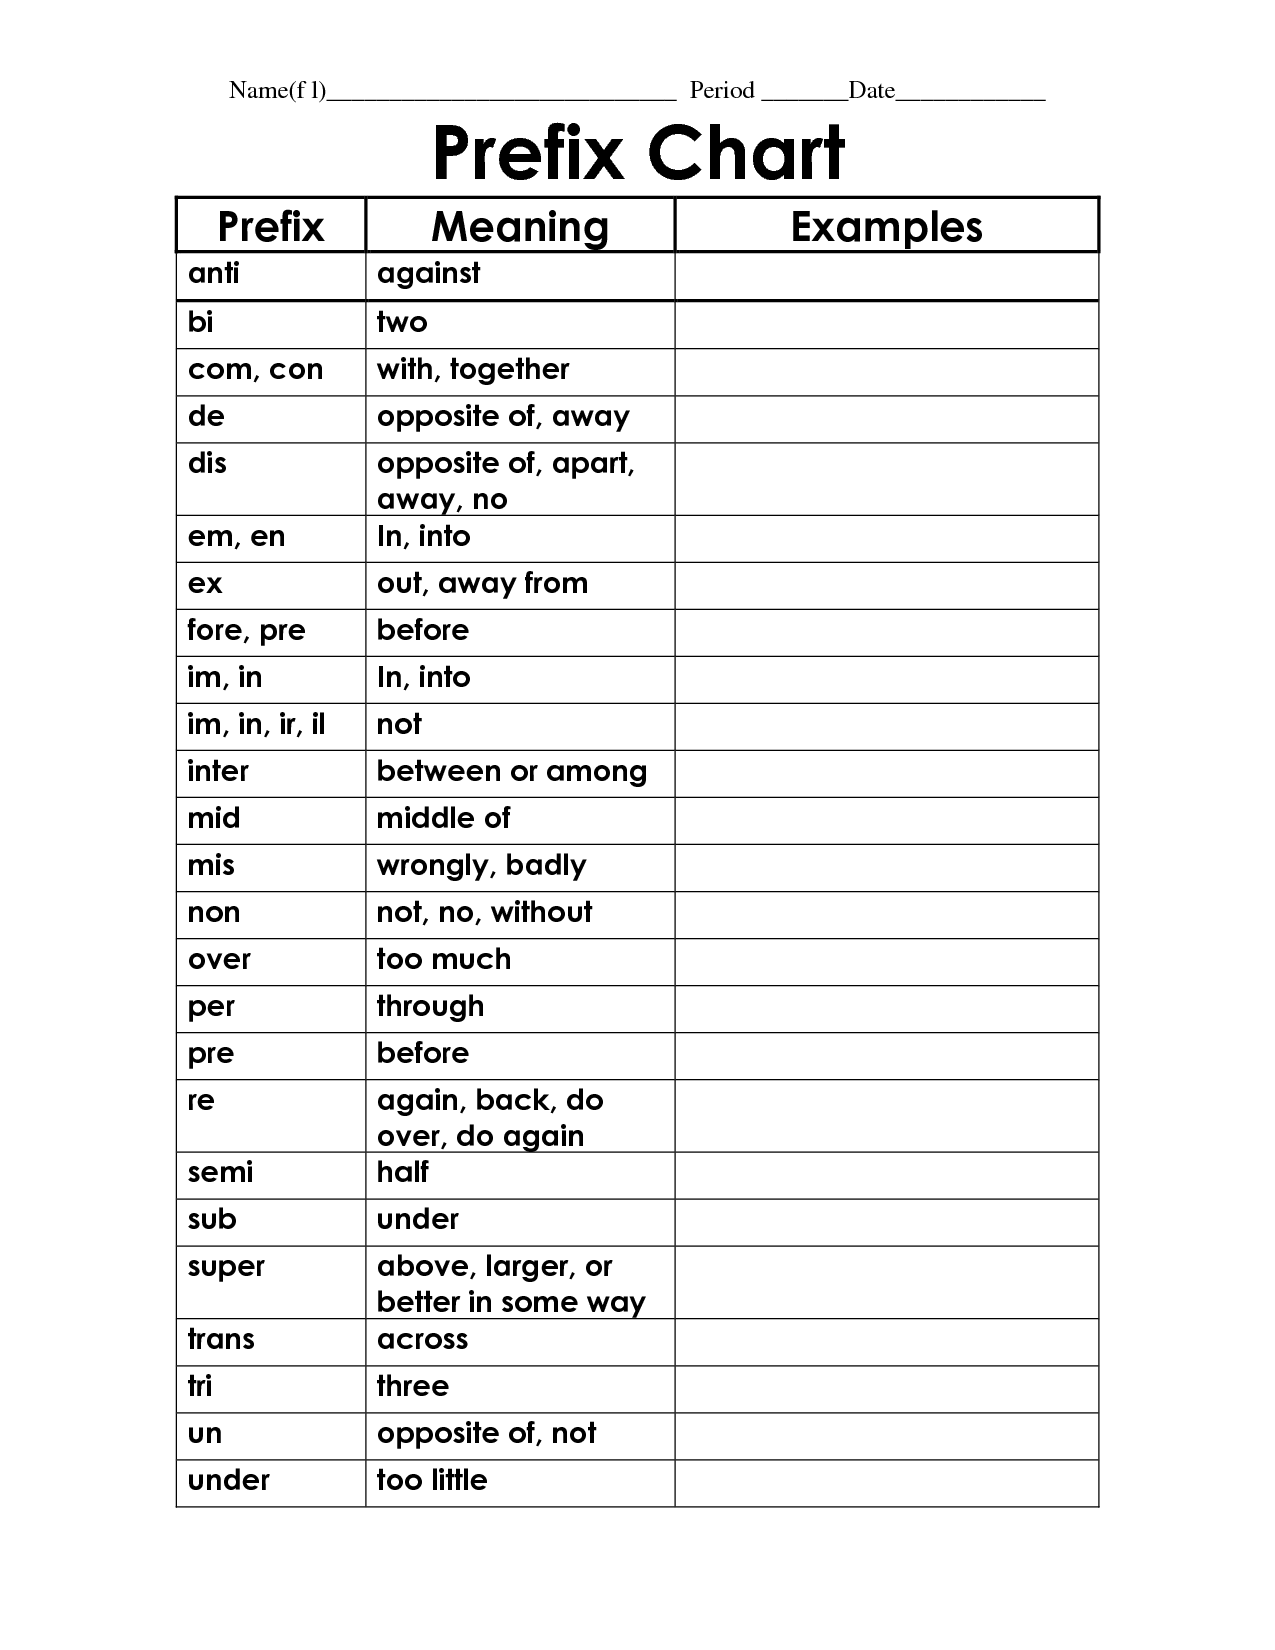 It is an image of Satisfactory Prefixes and Suffixes Printable Games